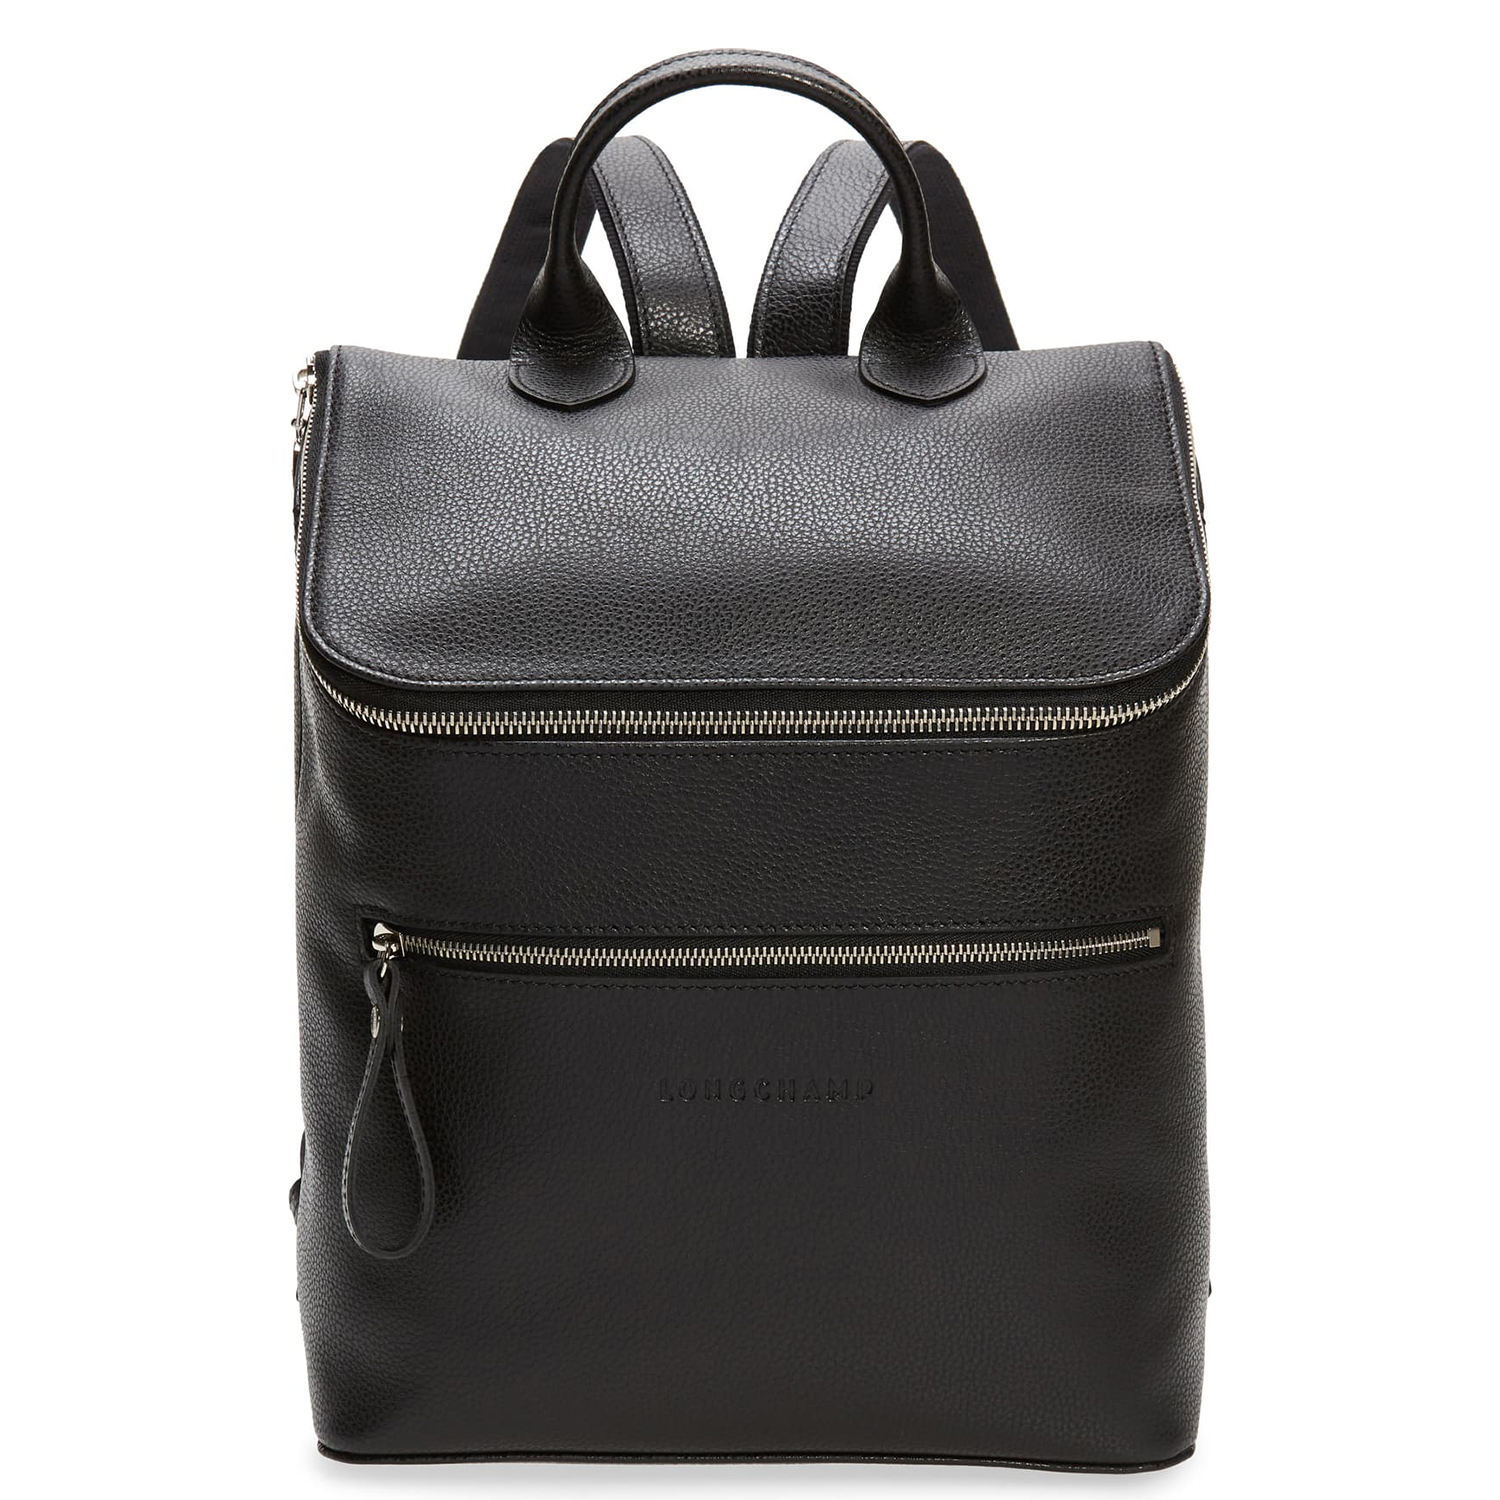 Longchamp Le Foulonne Leather Backpack